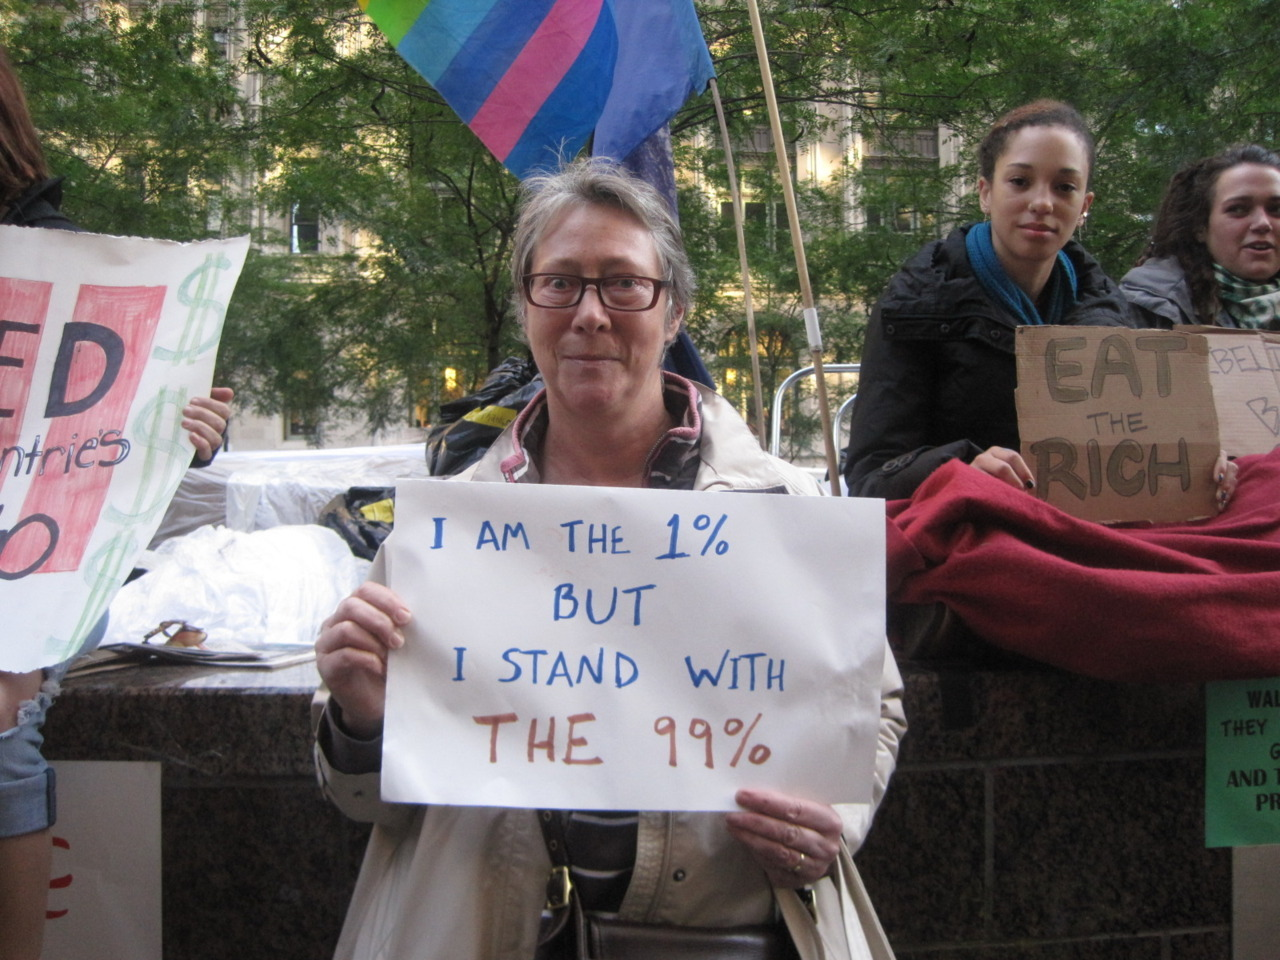 I am the 99%: I AM THE 1%, BUT I STAND WITH THE 99%, NYC LIBERTY PARK